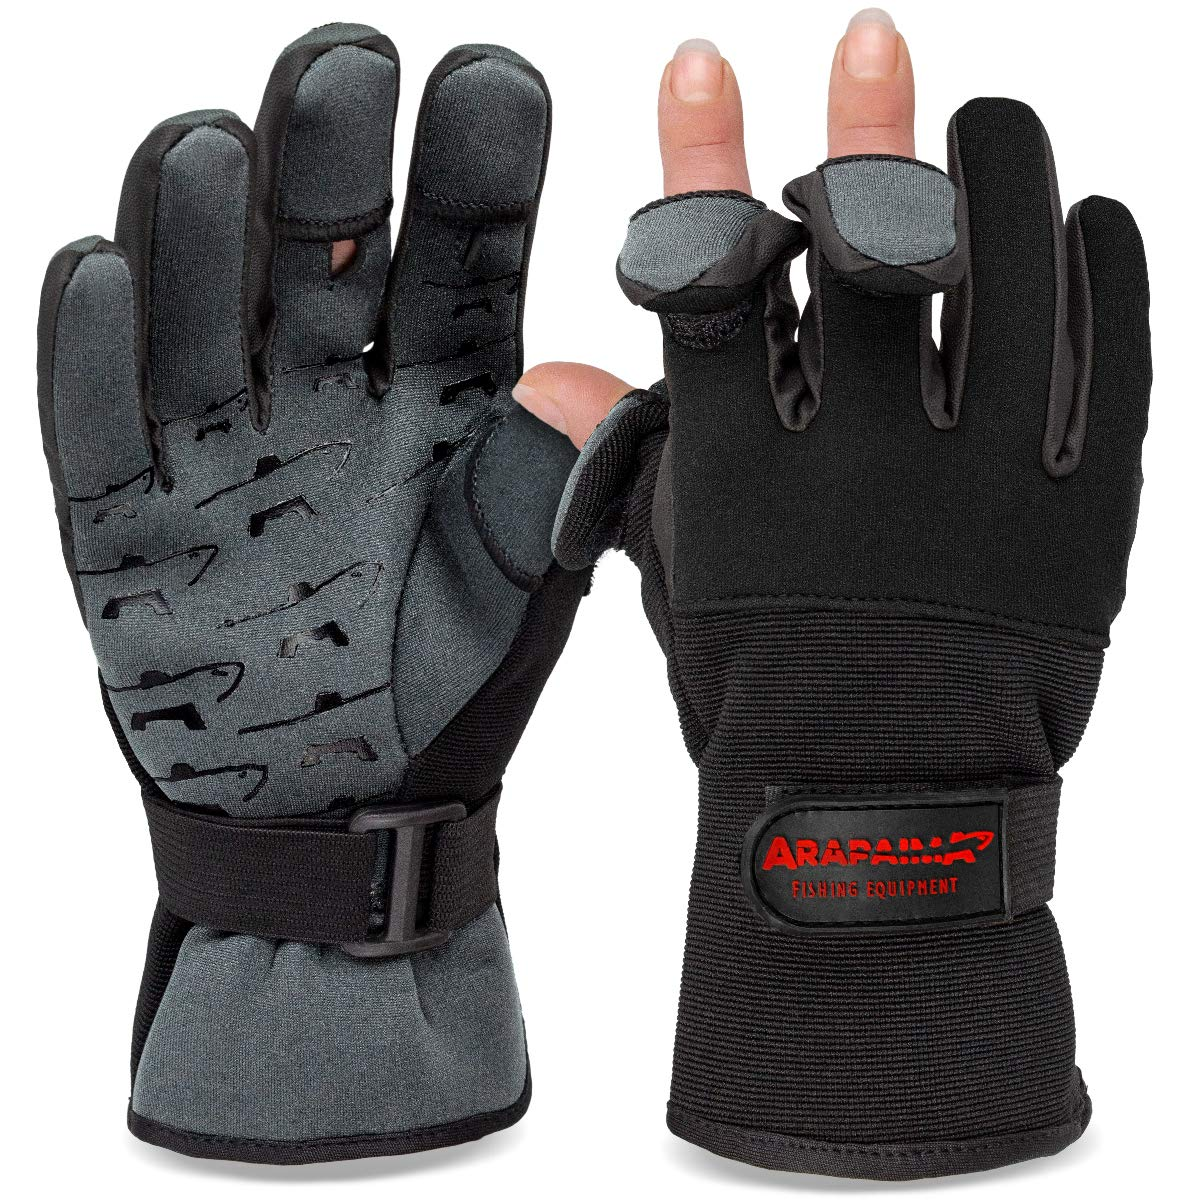 noorsk - ® Fishing Gloves Guantes de Pesca: Amazon.es ...